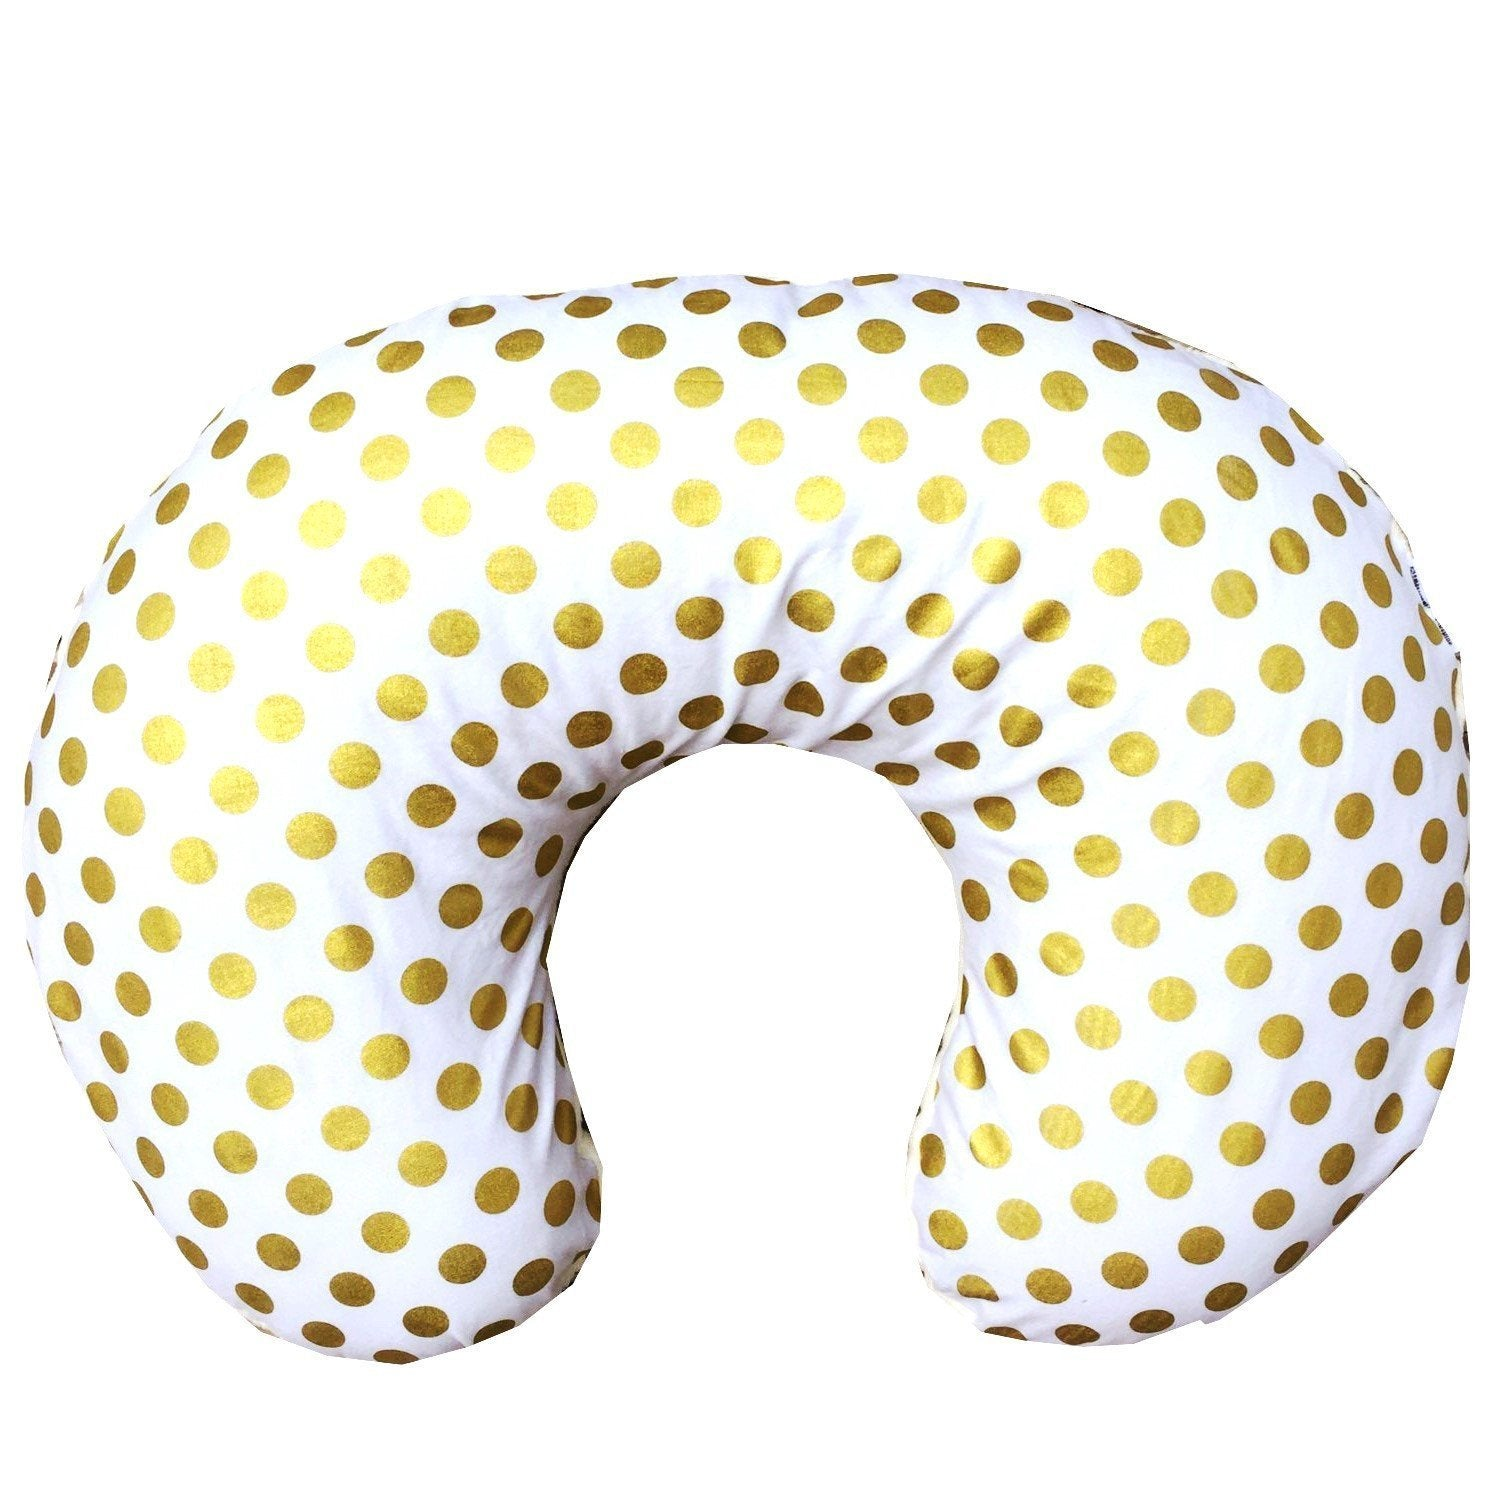 Boppy Covers | Metallic Gold Dots-Boppy Cover-Large Dots-Jack and Jill Boutique